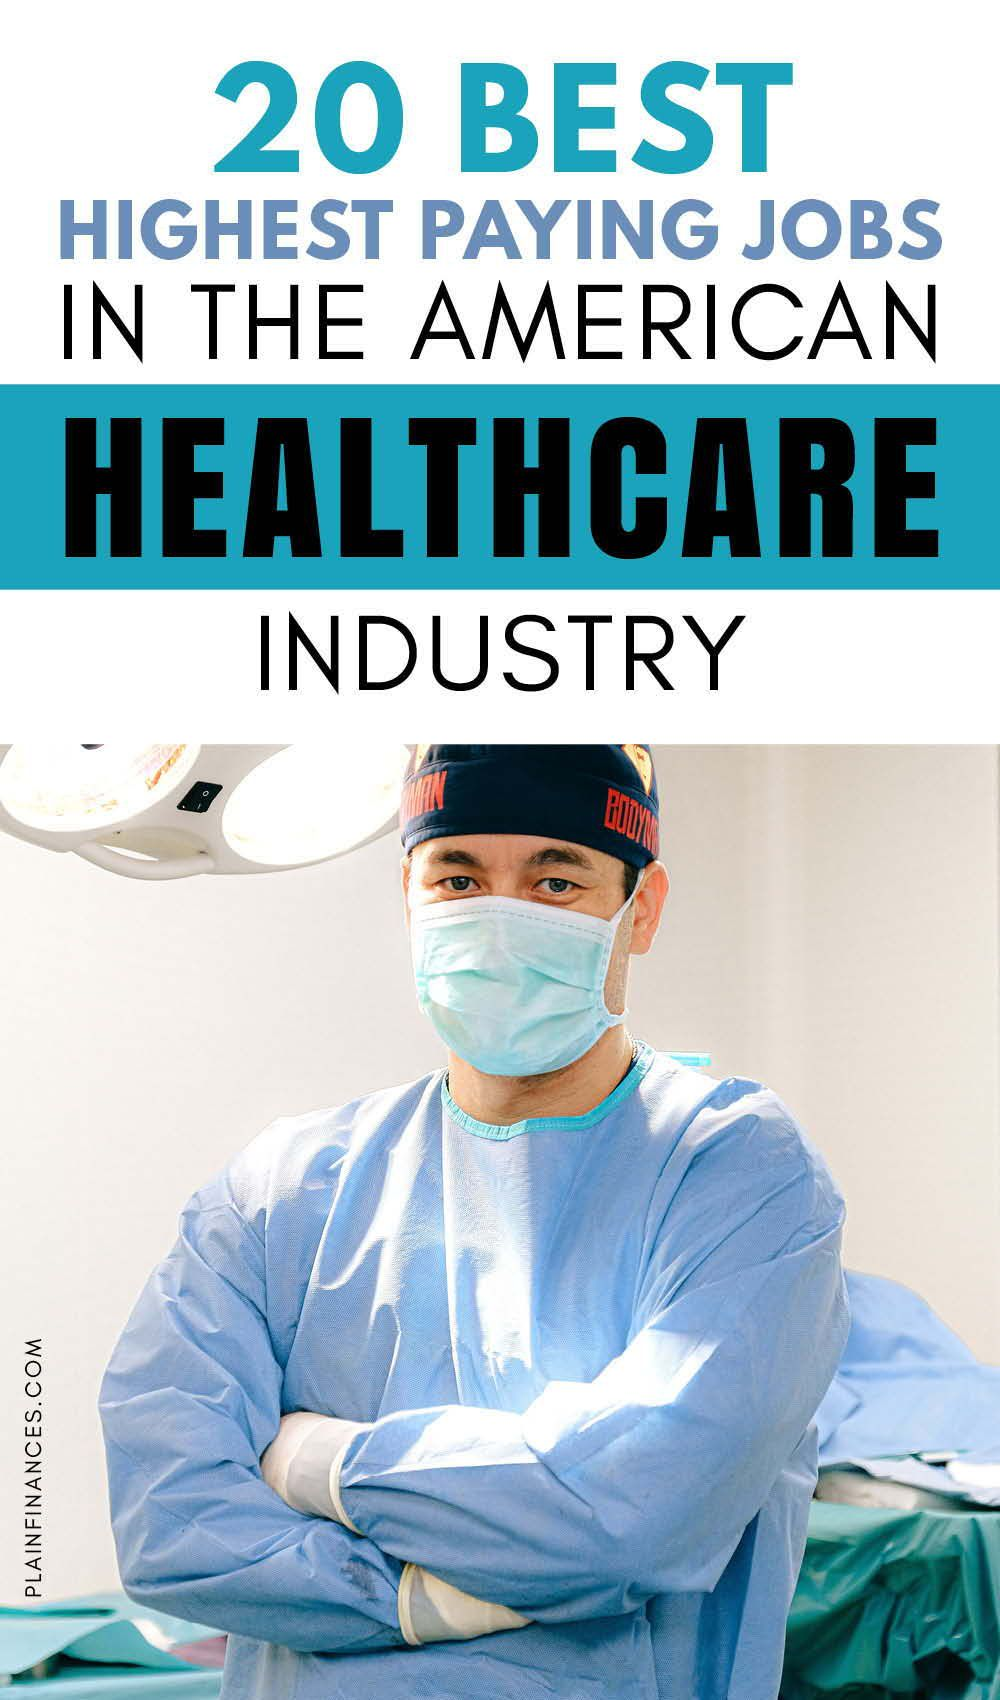 20 Best Highest Paying Jobs in the American Healthcare